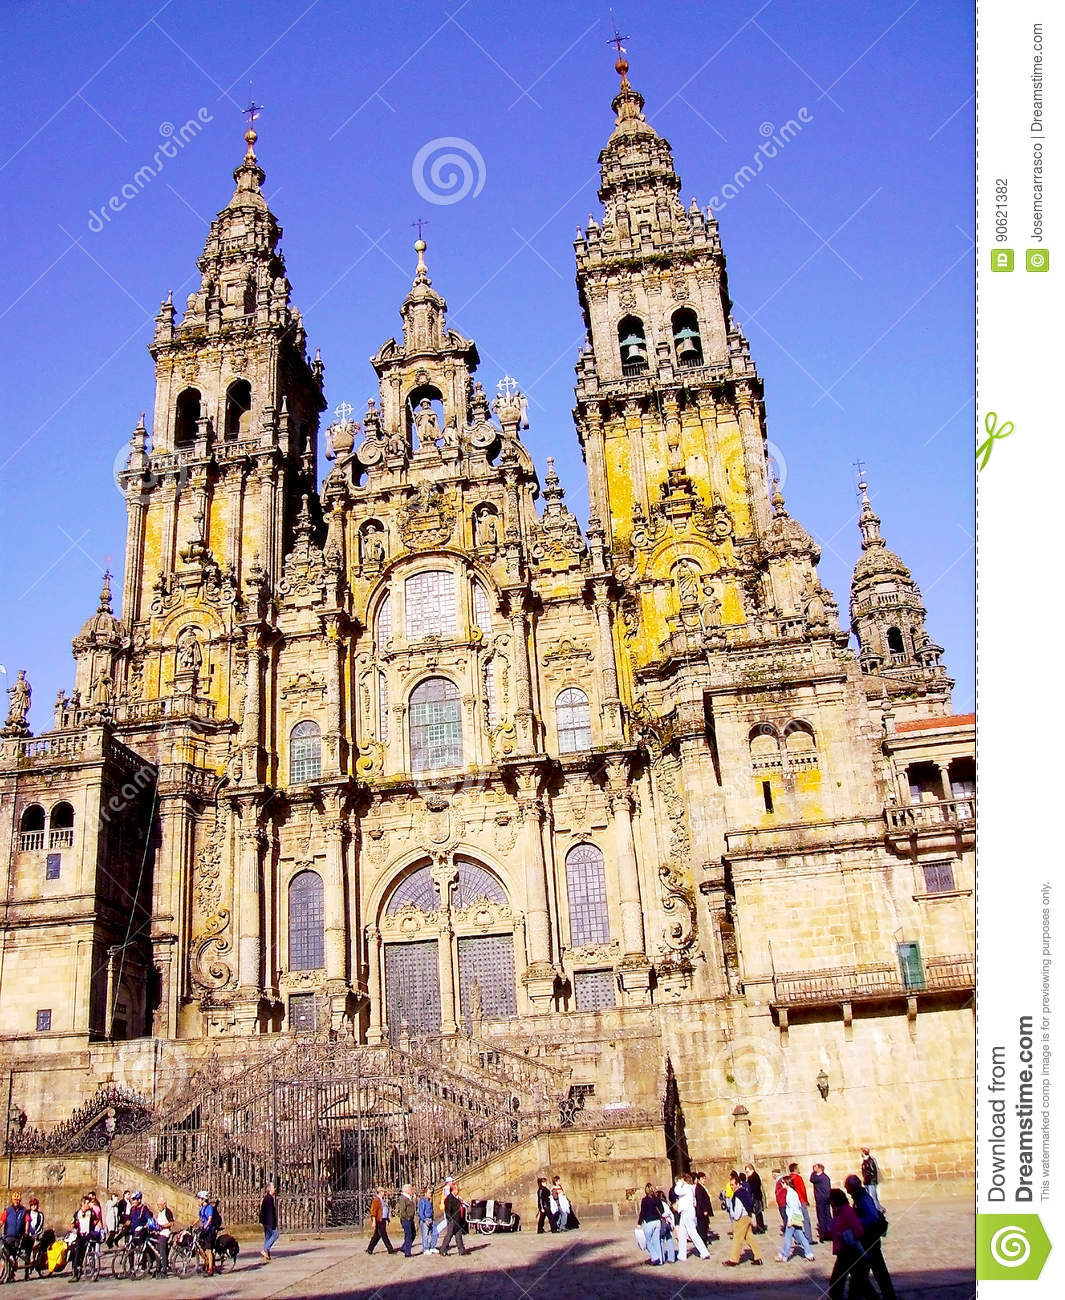 santiago de compostela christian singles Pilgrimage to santiago de compostela:  the pilgrimages to santiago de compostela contributed a lot to revive the commercial and cultural exchanges with christian .